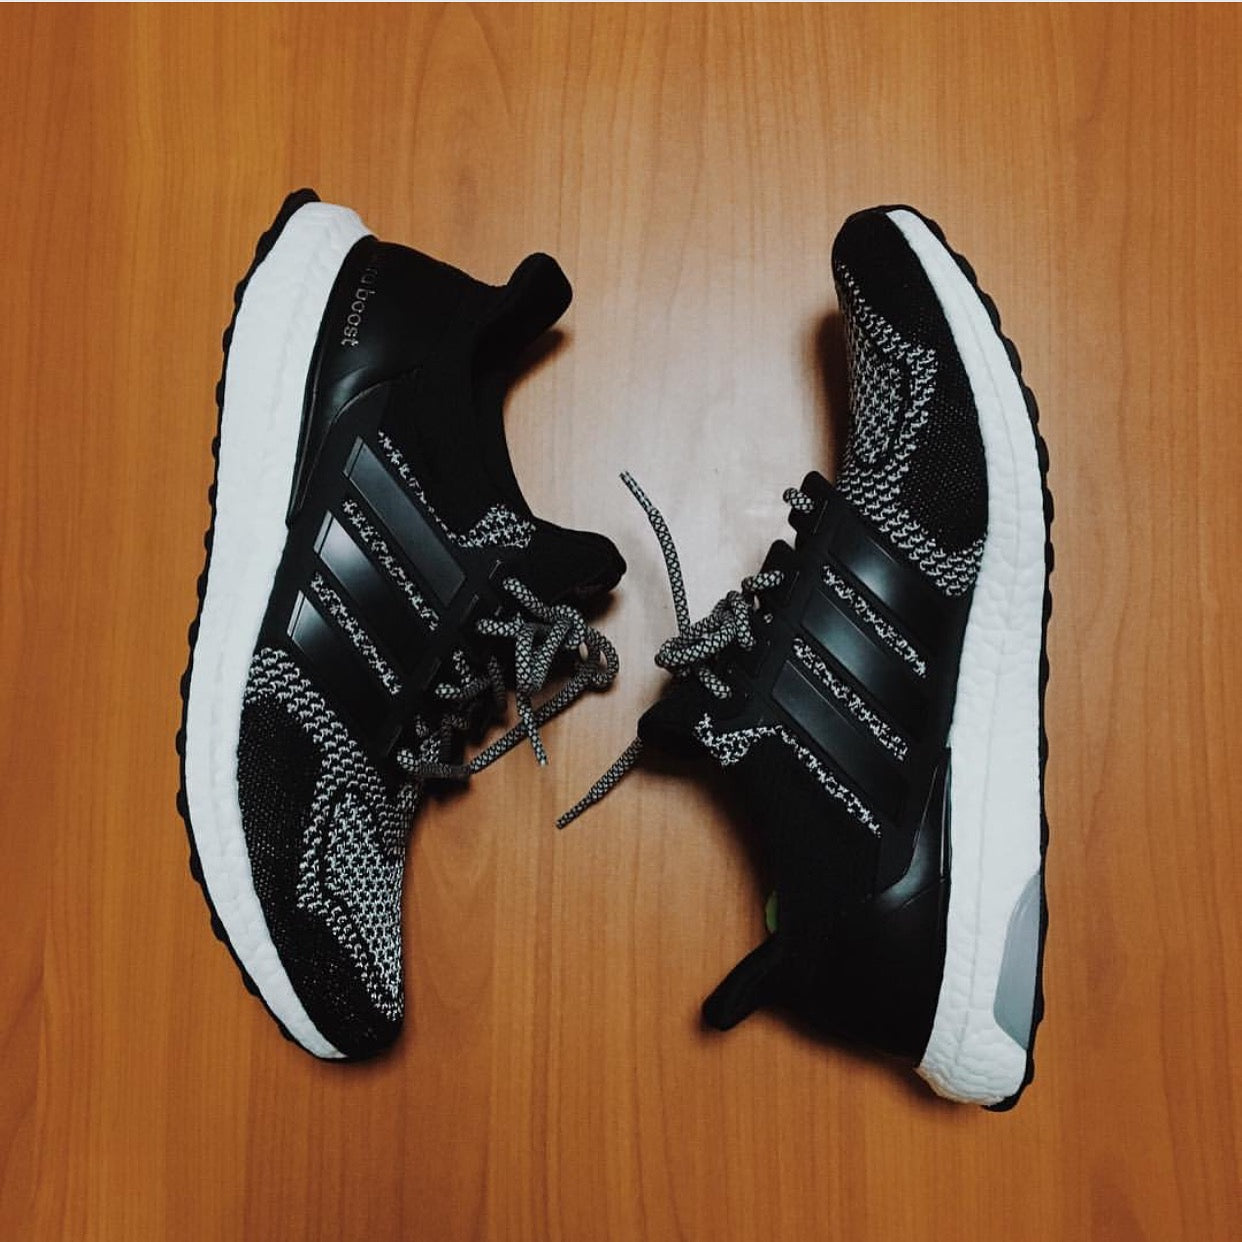 Adidas Ultra Boost Laces